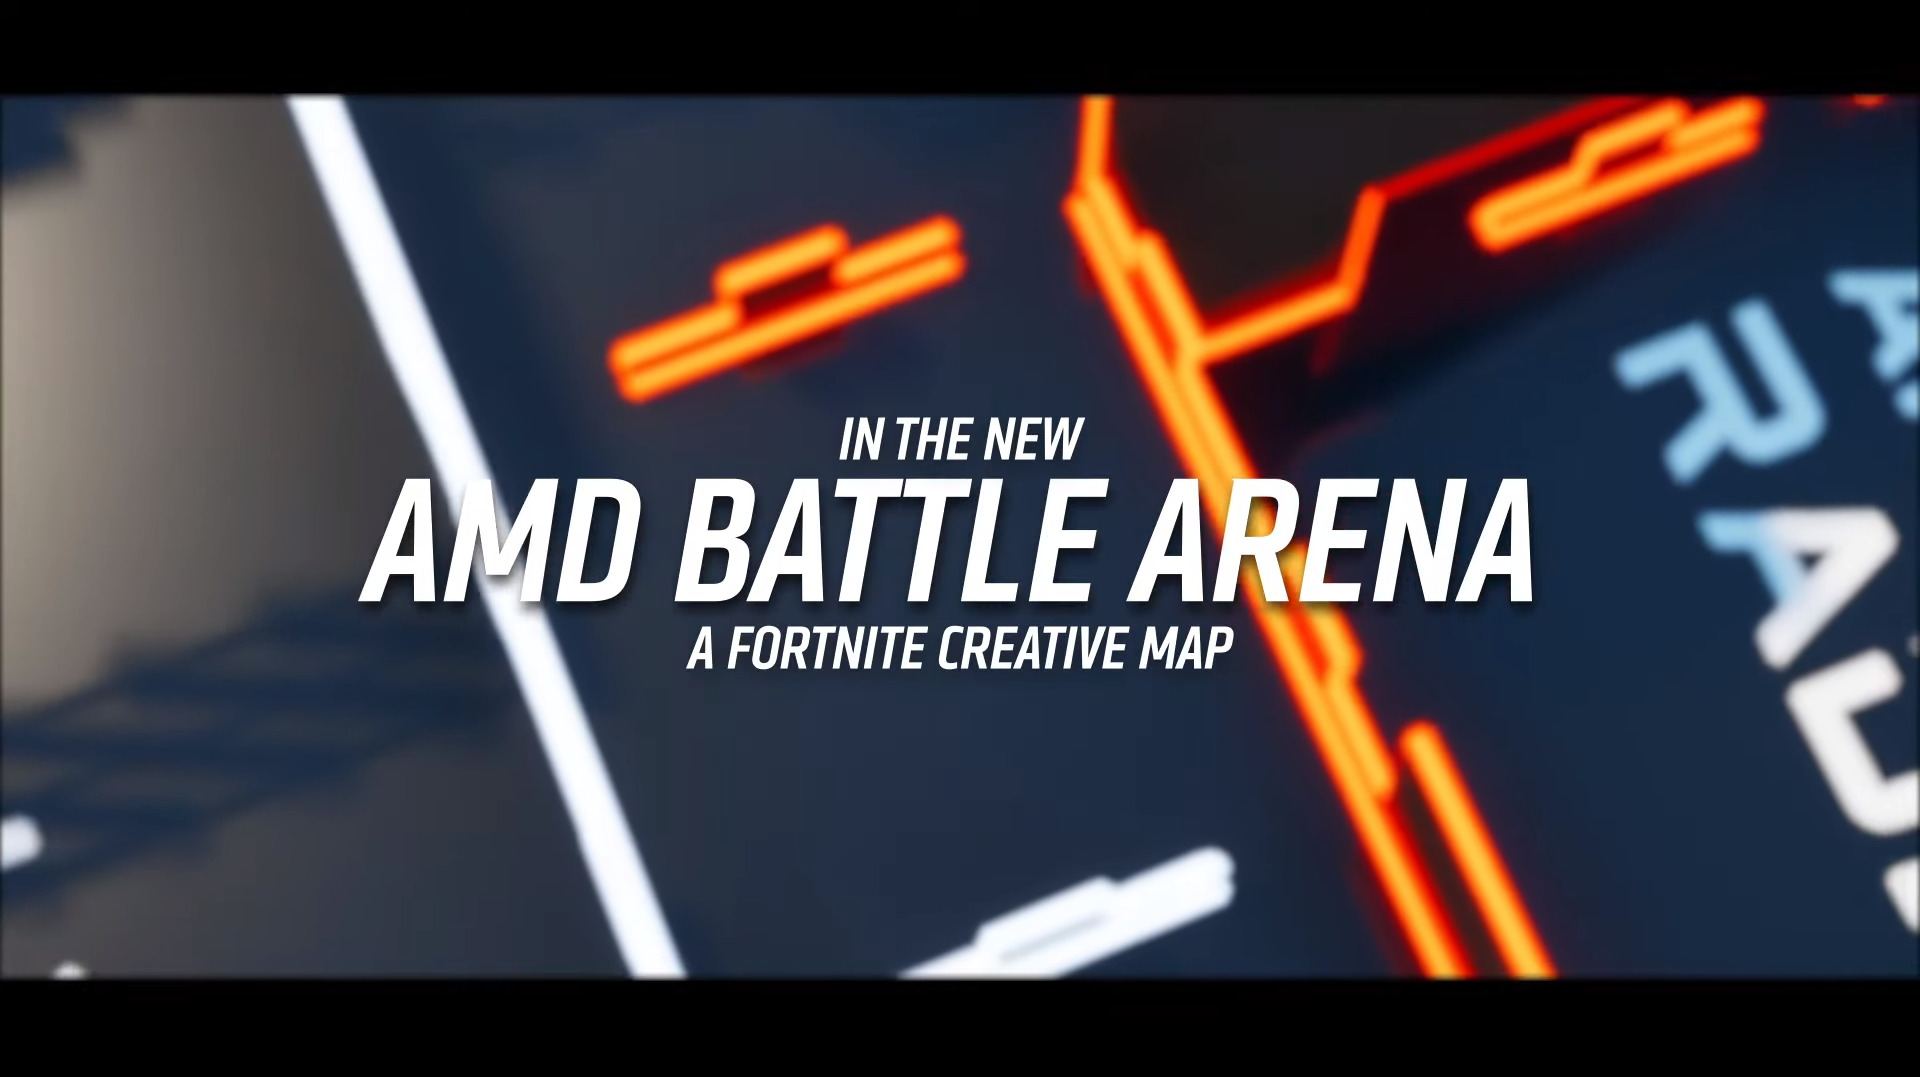 AMD Battle Arena